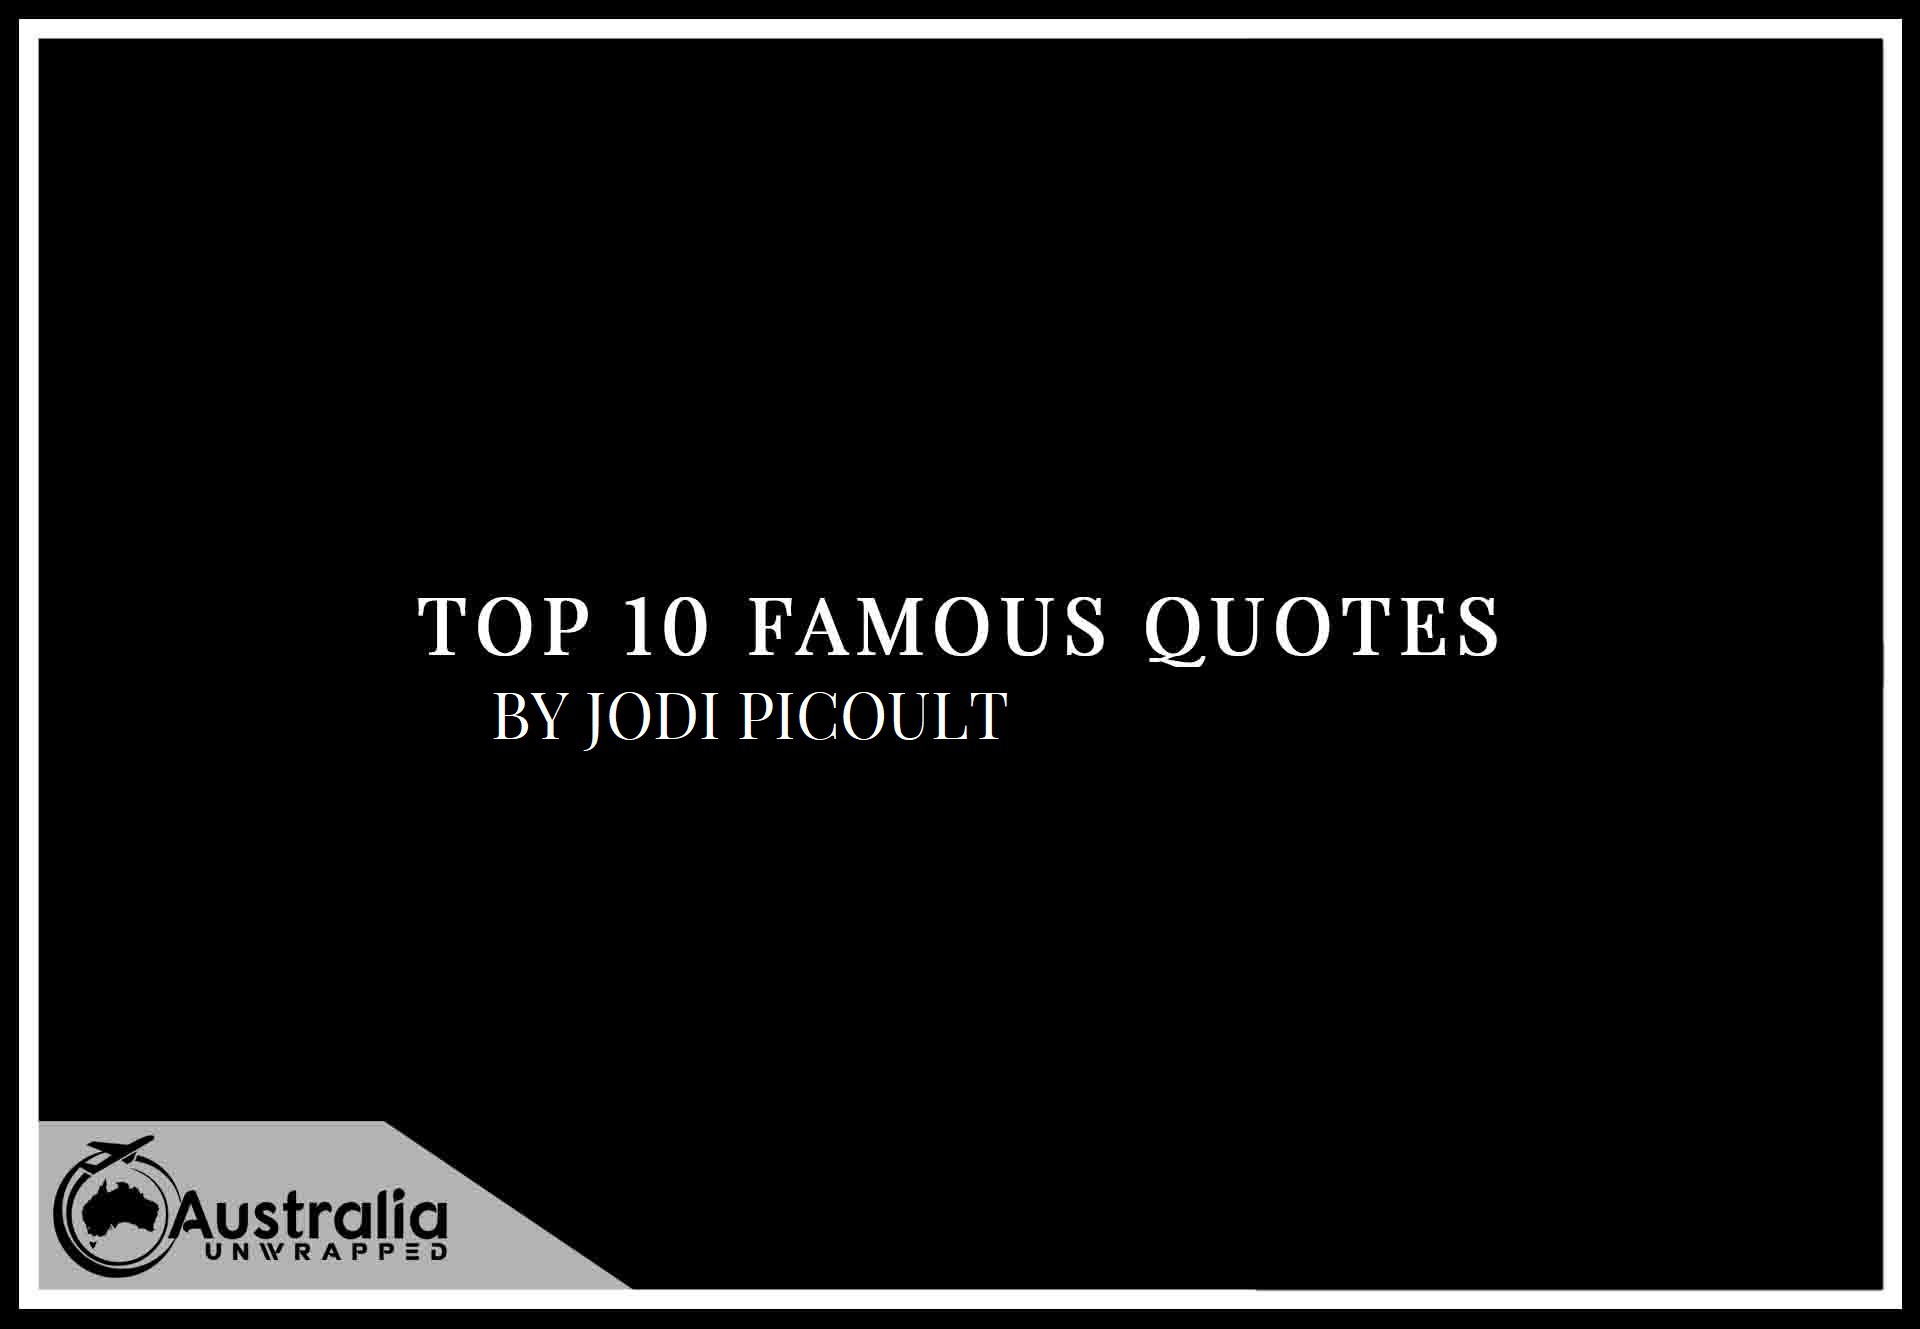 Top 10 Famous Quotes by Author Jodi Picoult